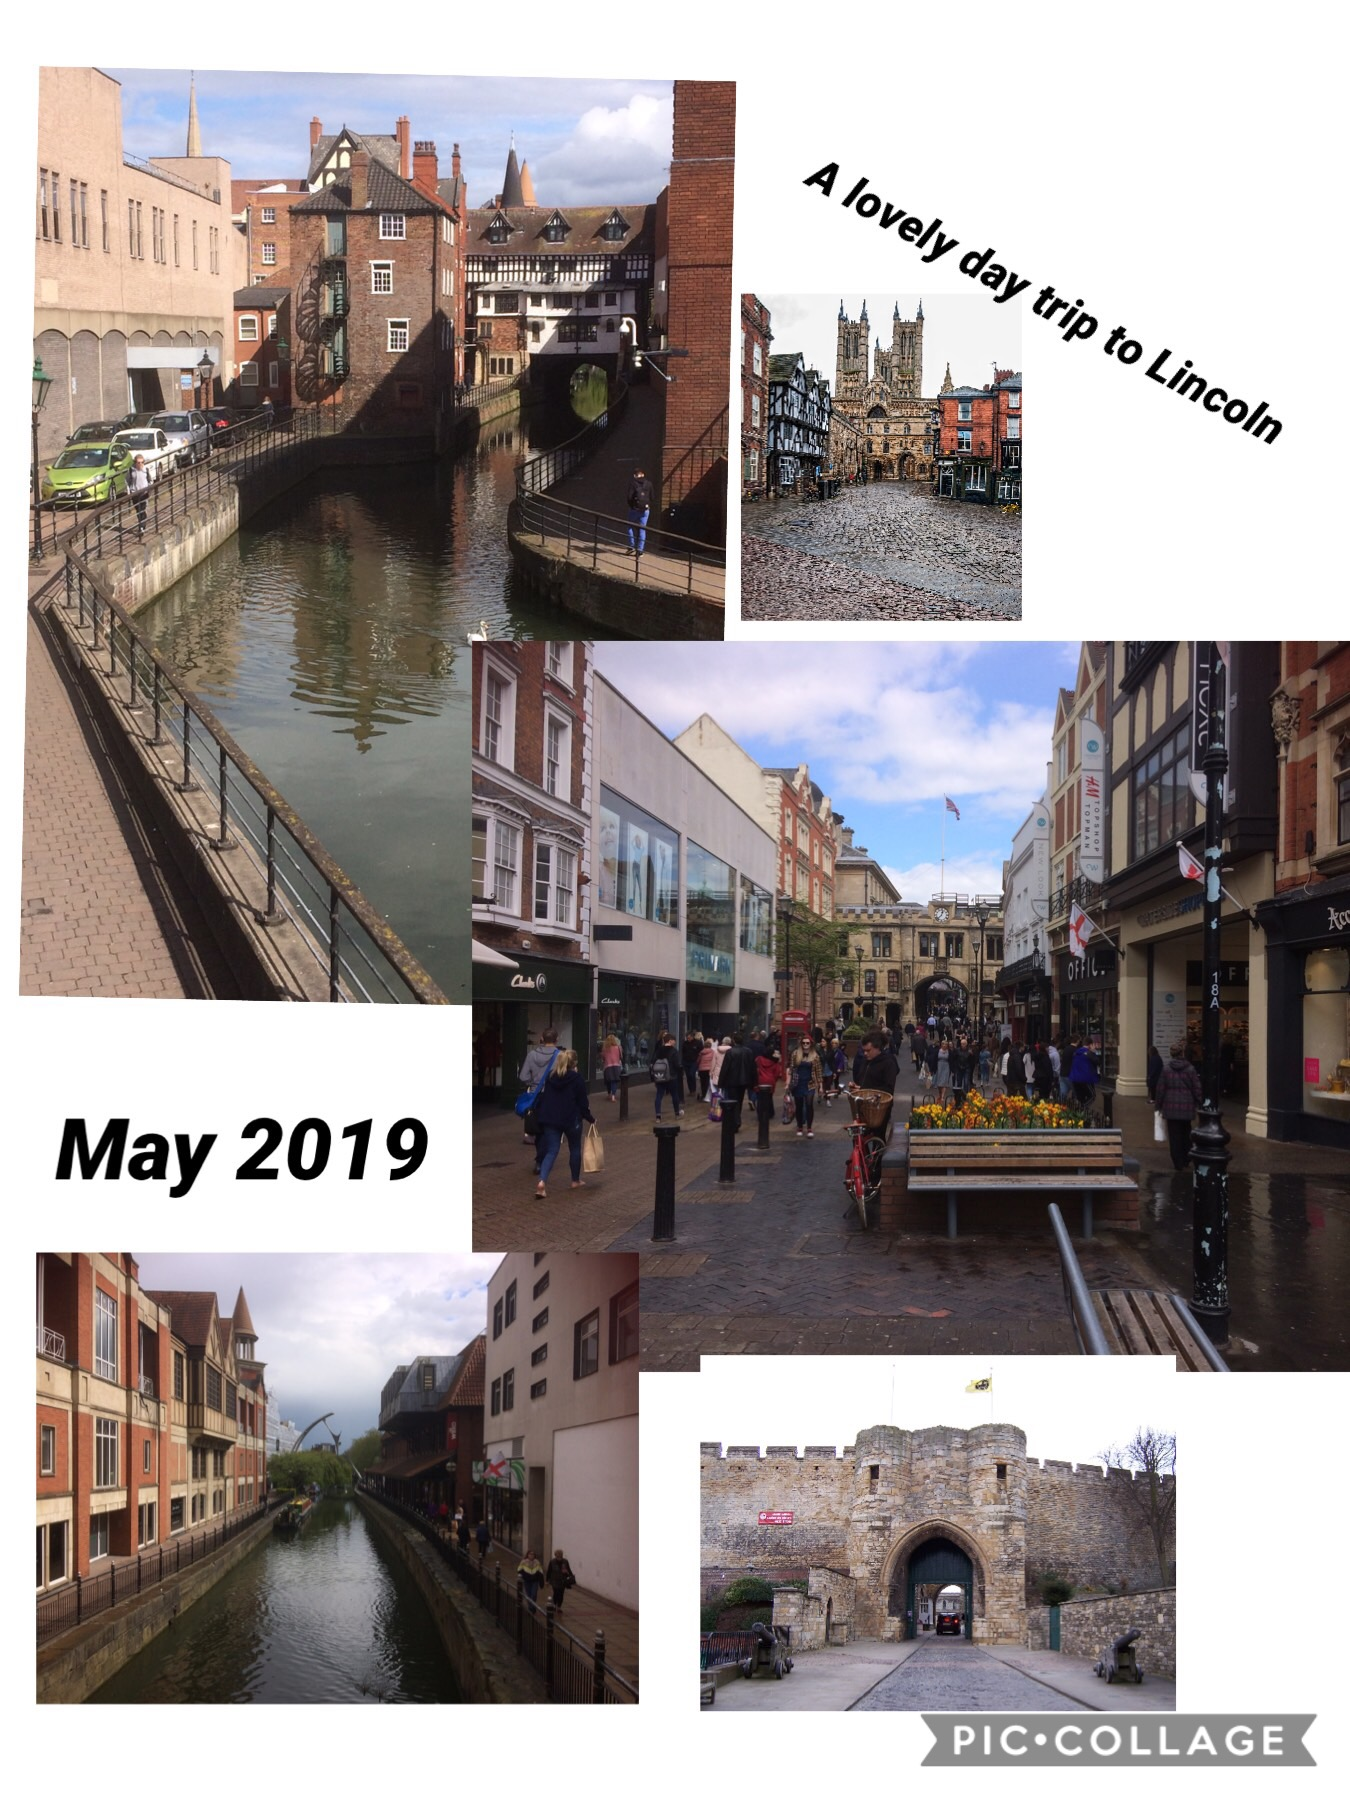 Day trip to Lincoln